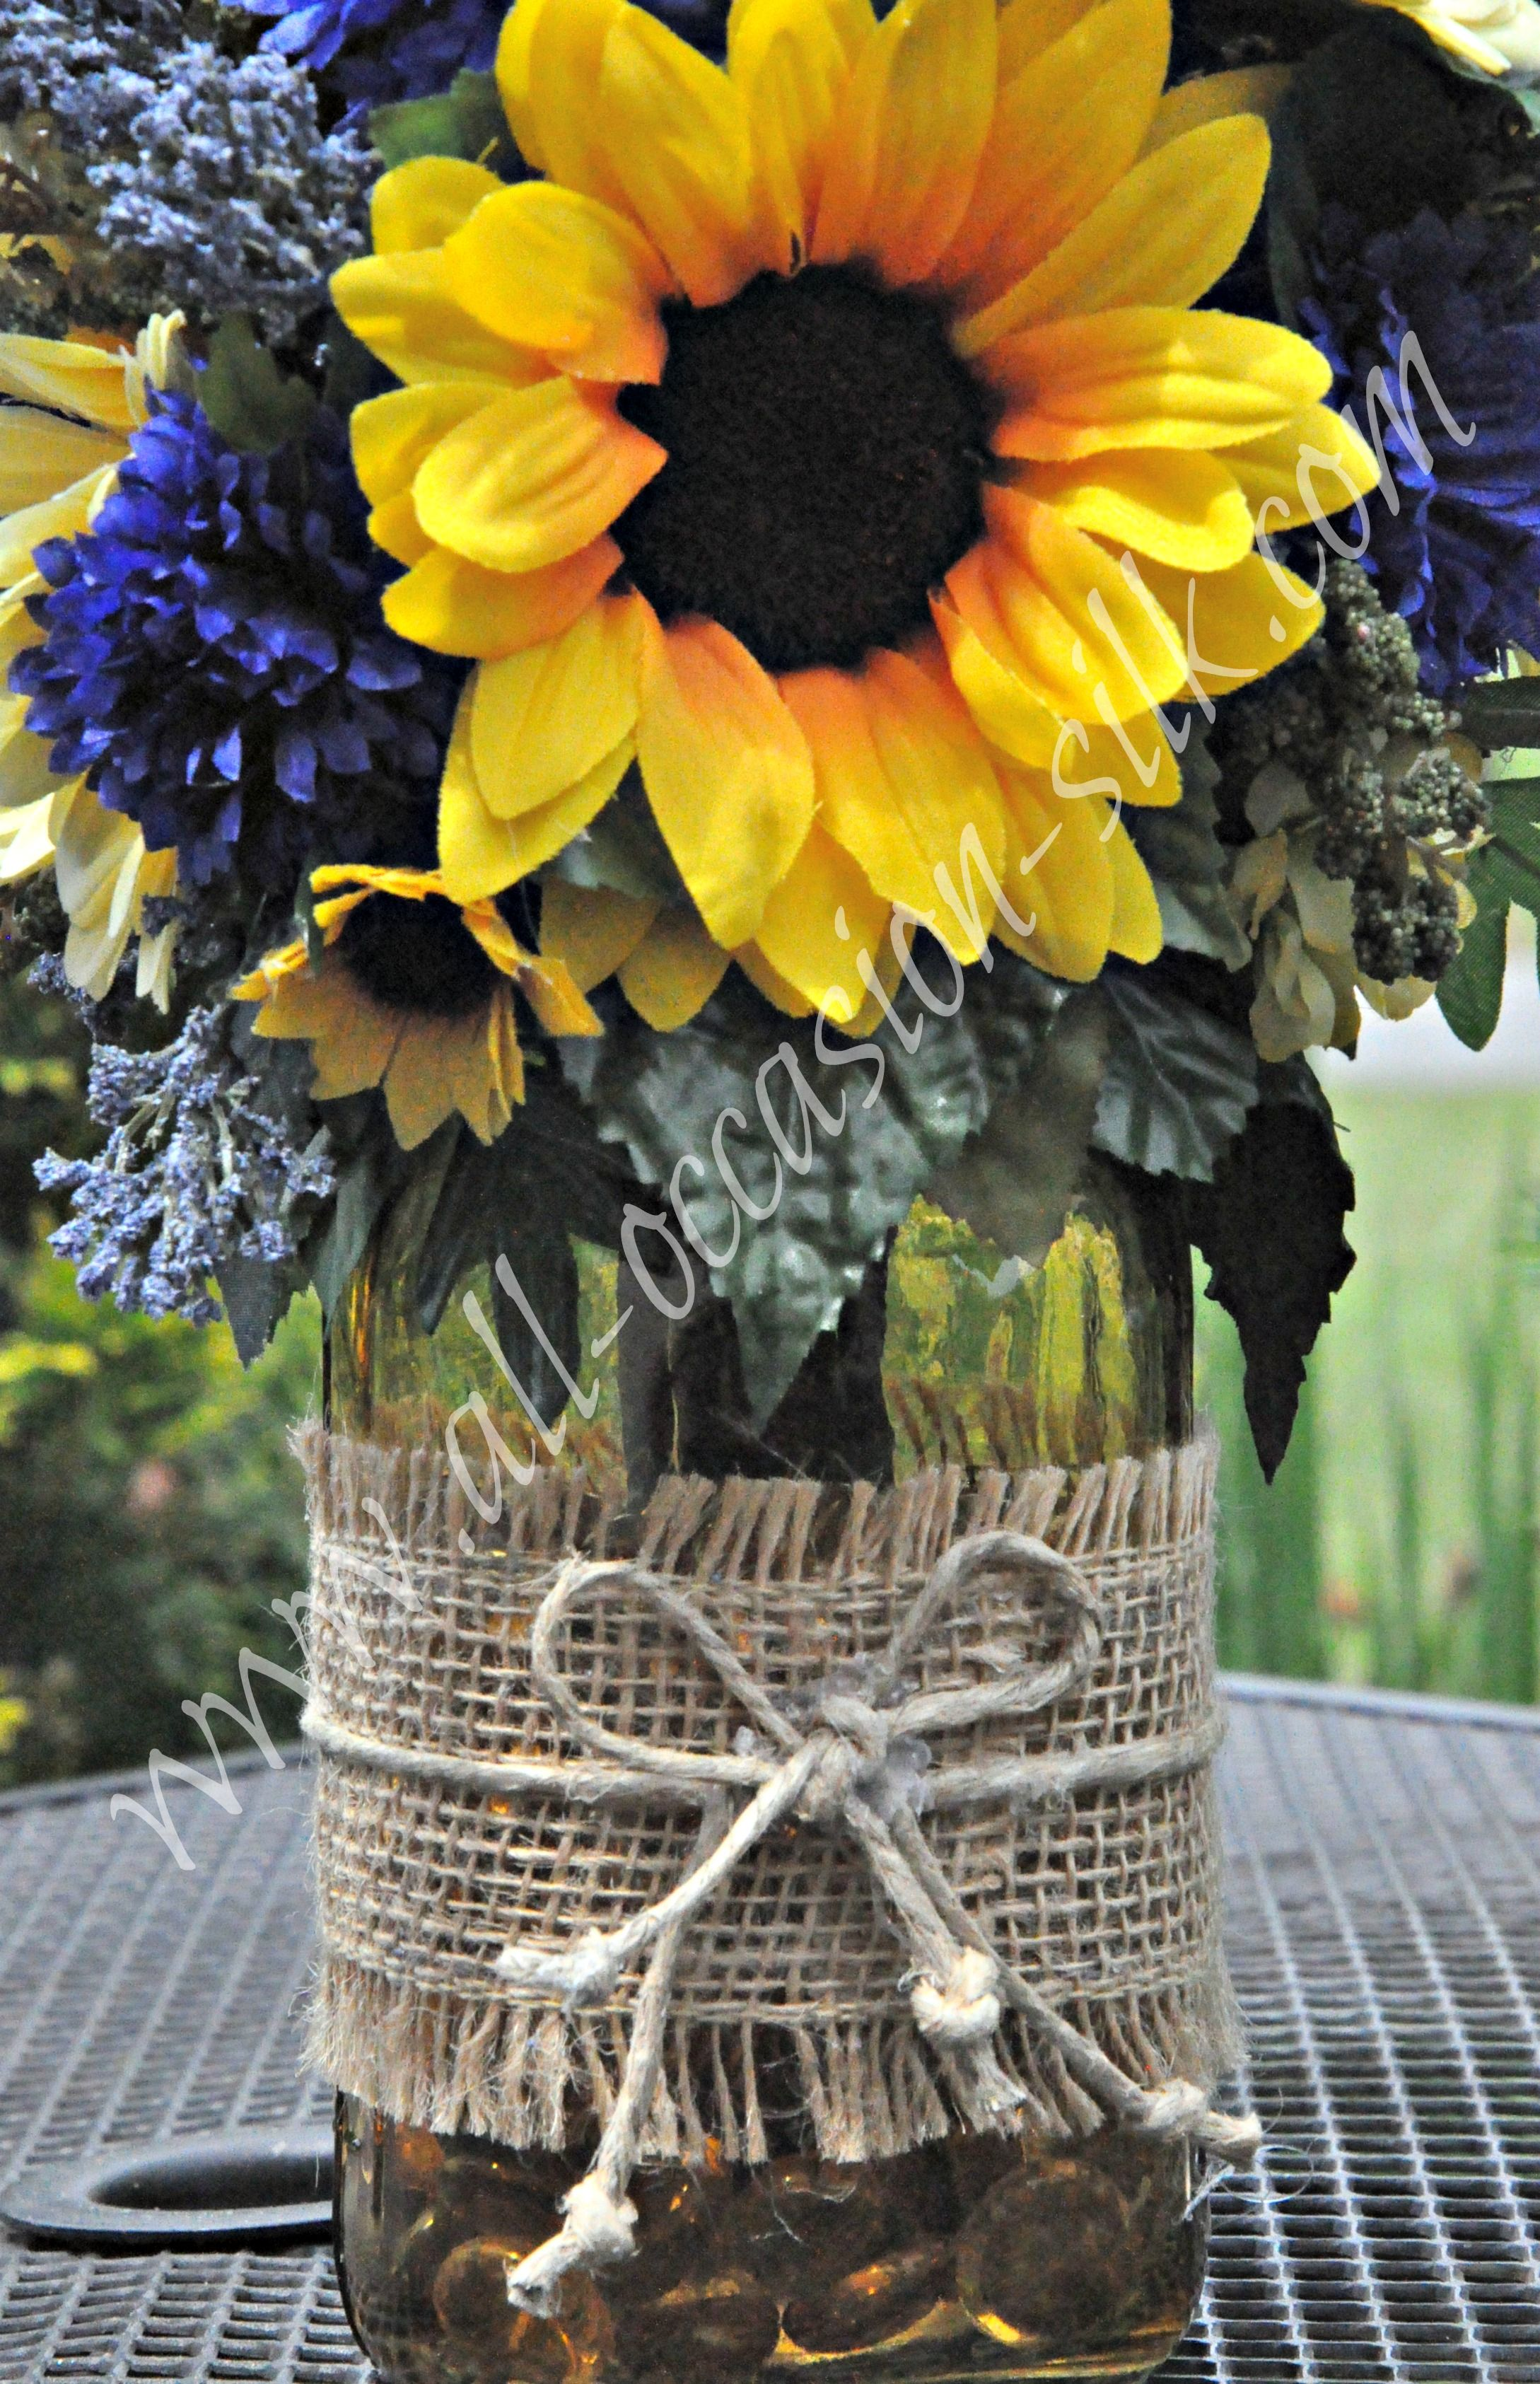 Rusticstyle centerpiece featuring sunflowers blue delphinium blue